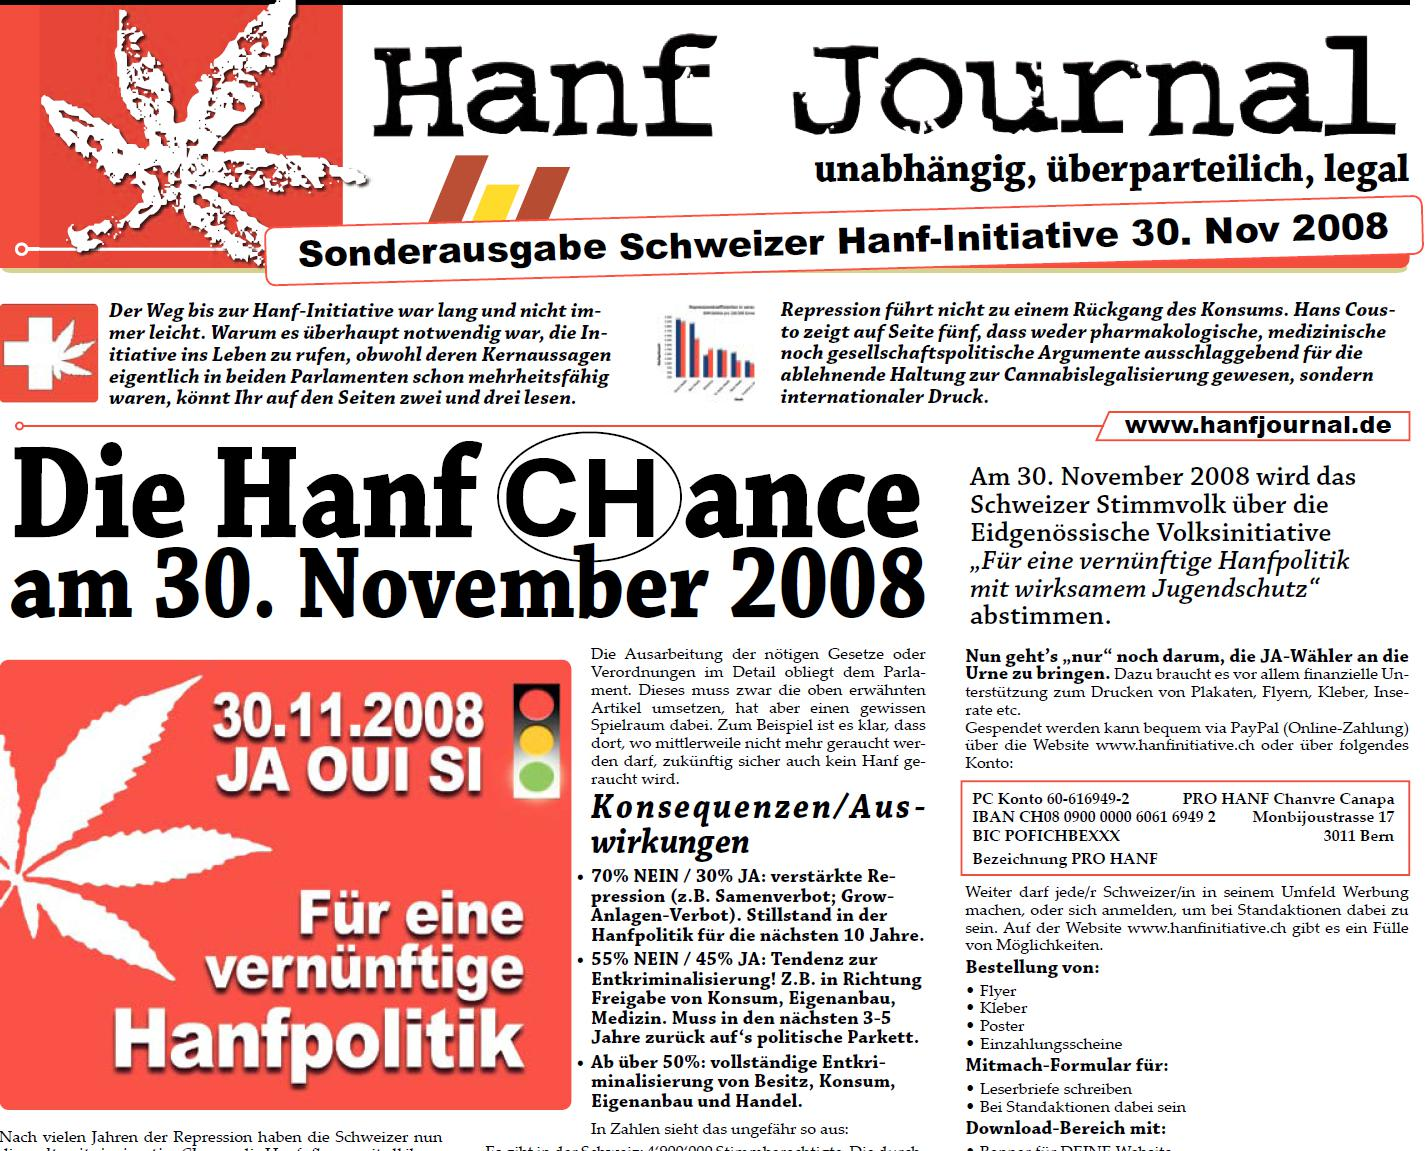 Hanf Journal Aiusgabe Hanf als Chance